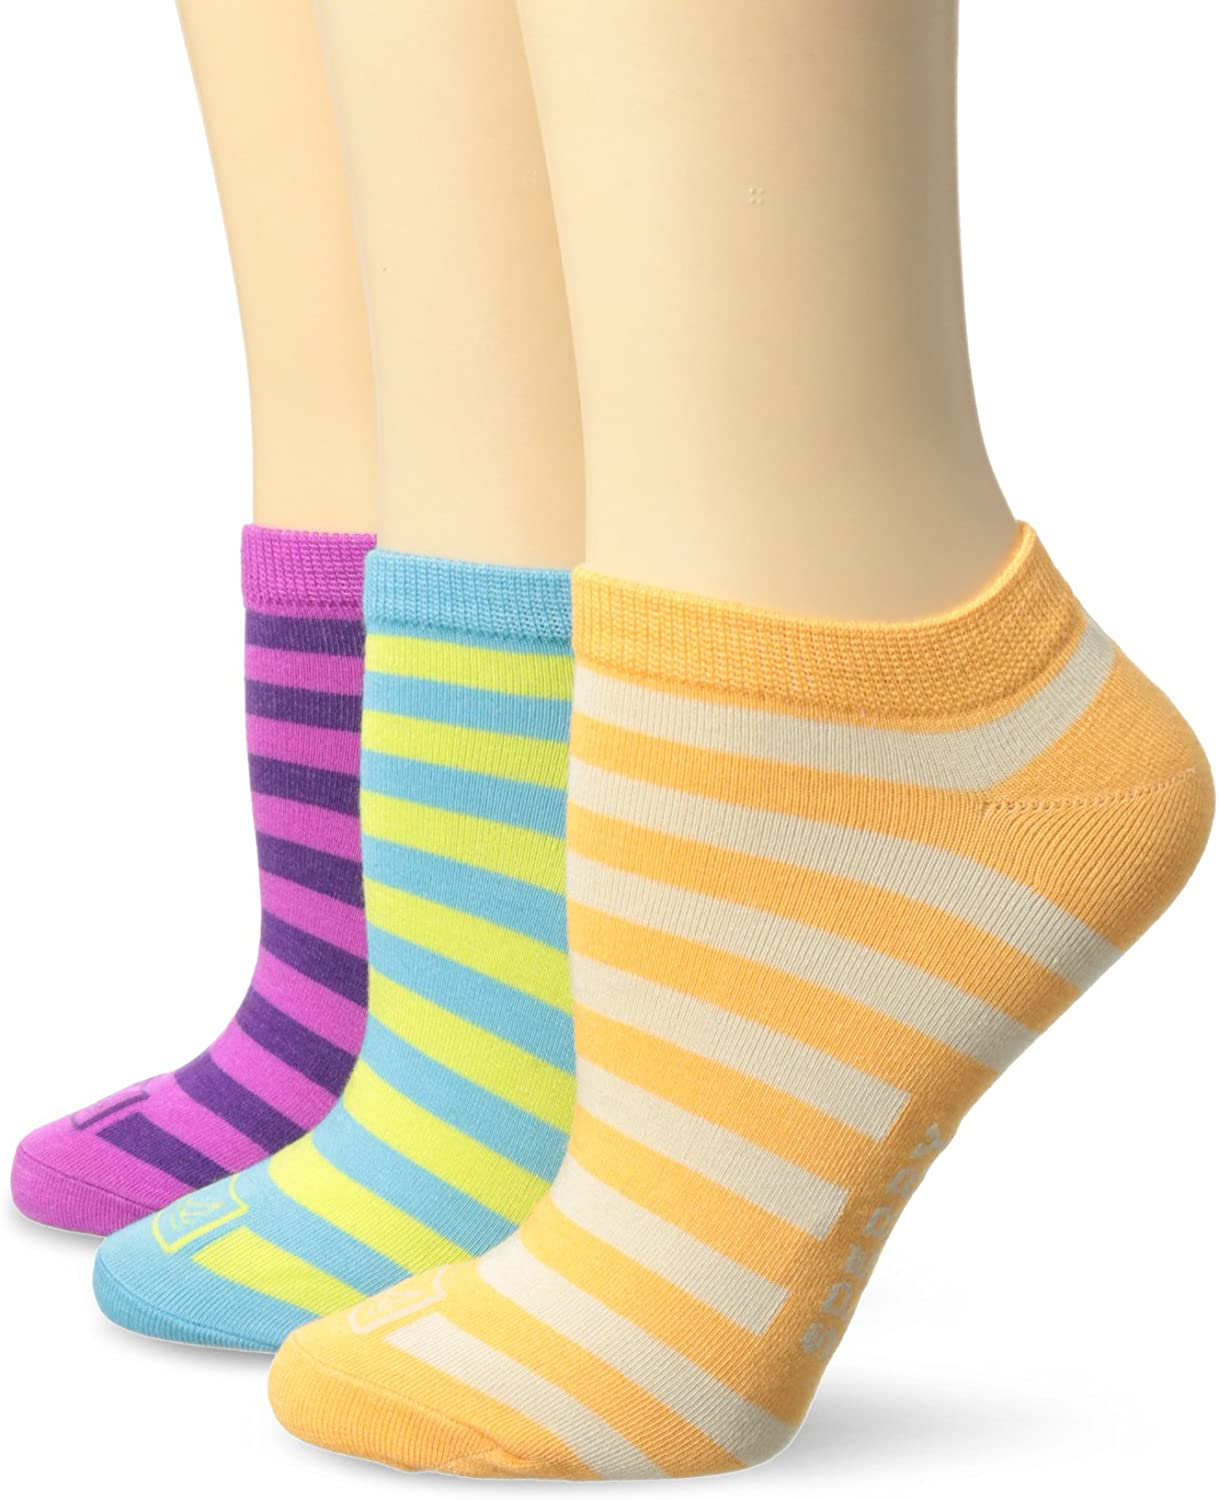 Sperry Top-Sider Women's Signature Stripe 3 Pair Pack Low Cut Socks Socks